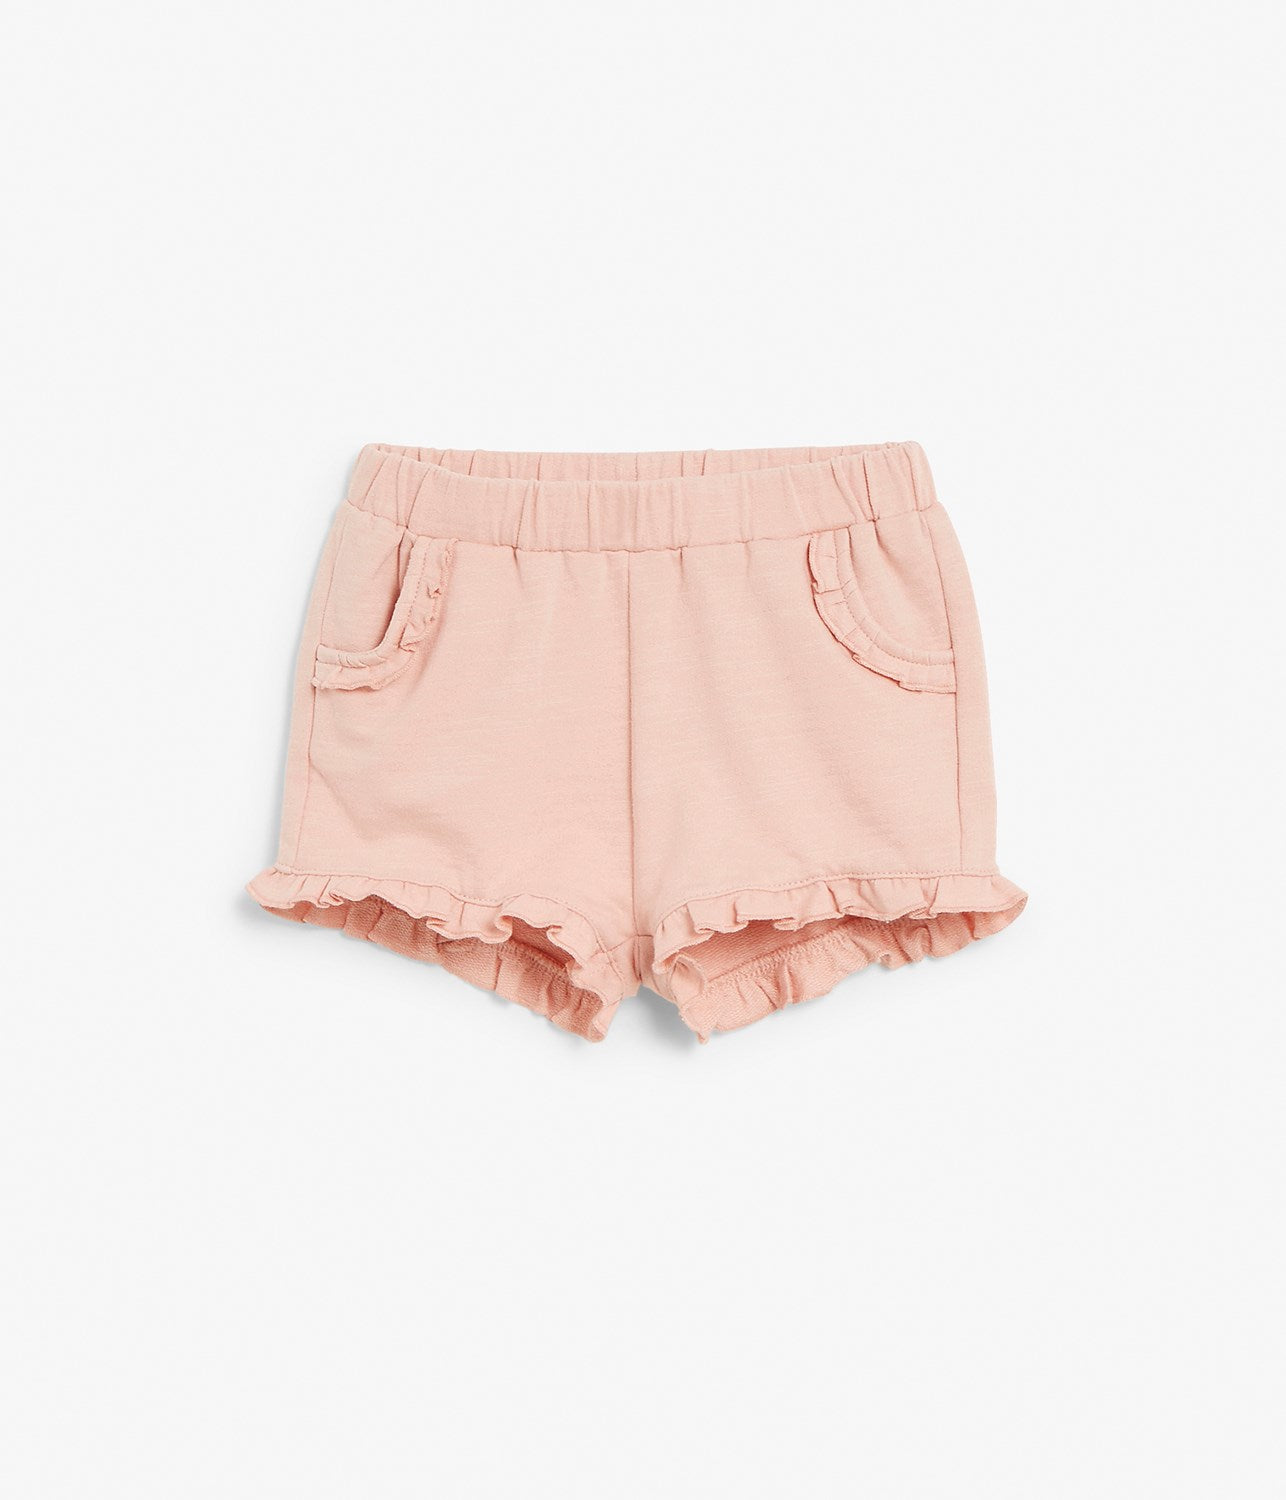 Baby shorts with ruffles